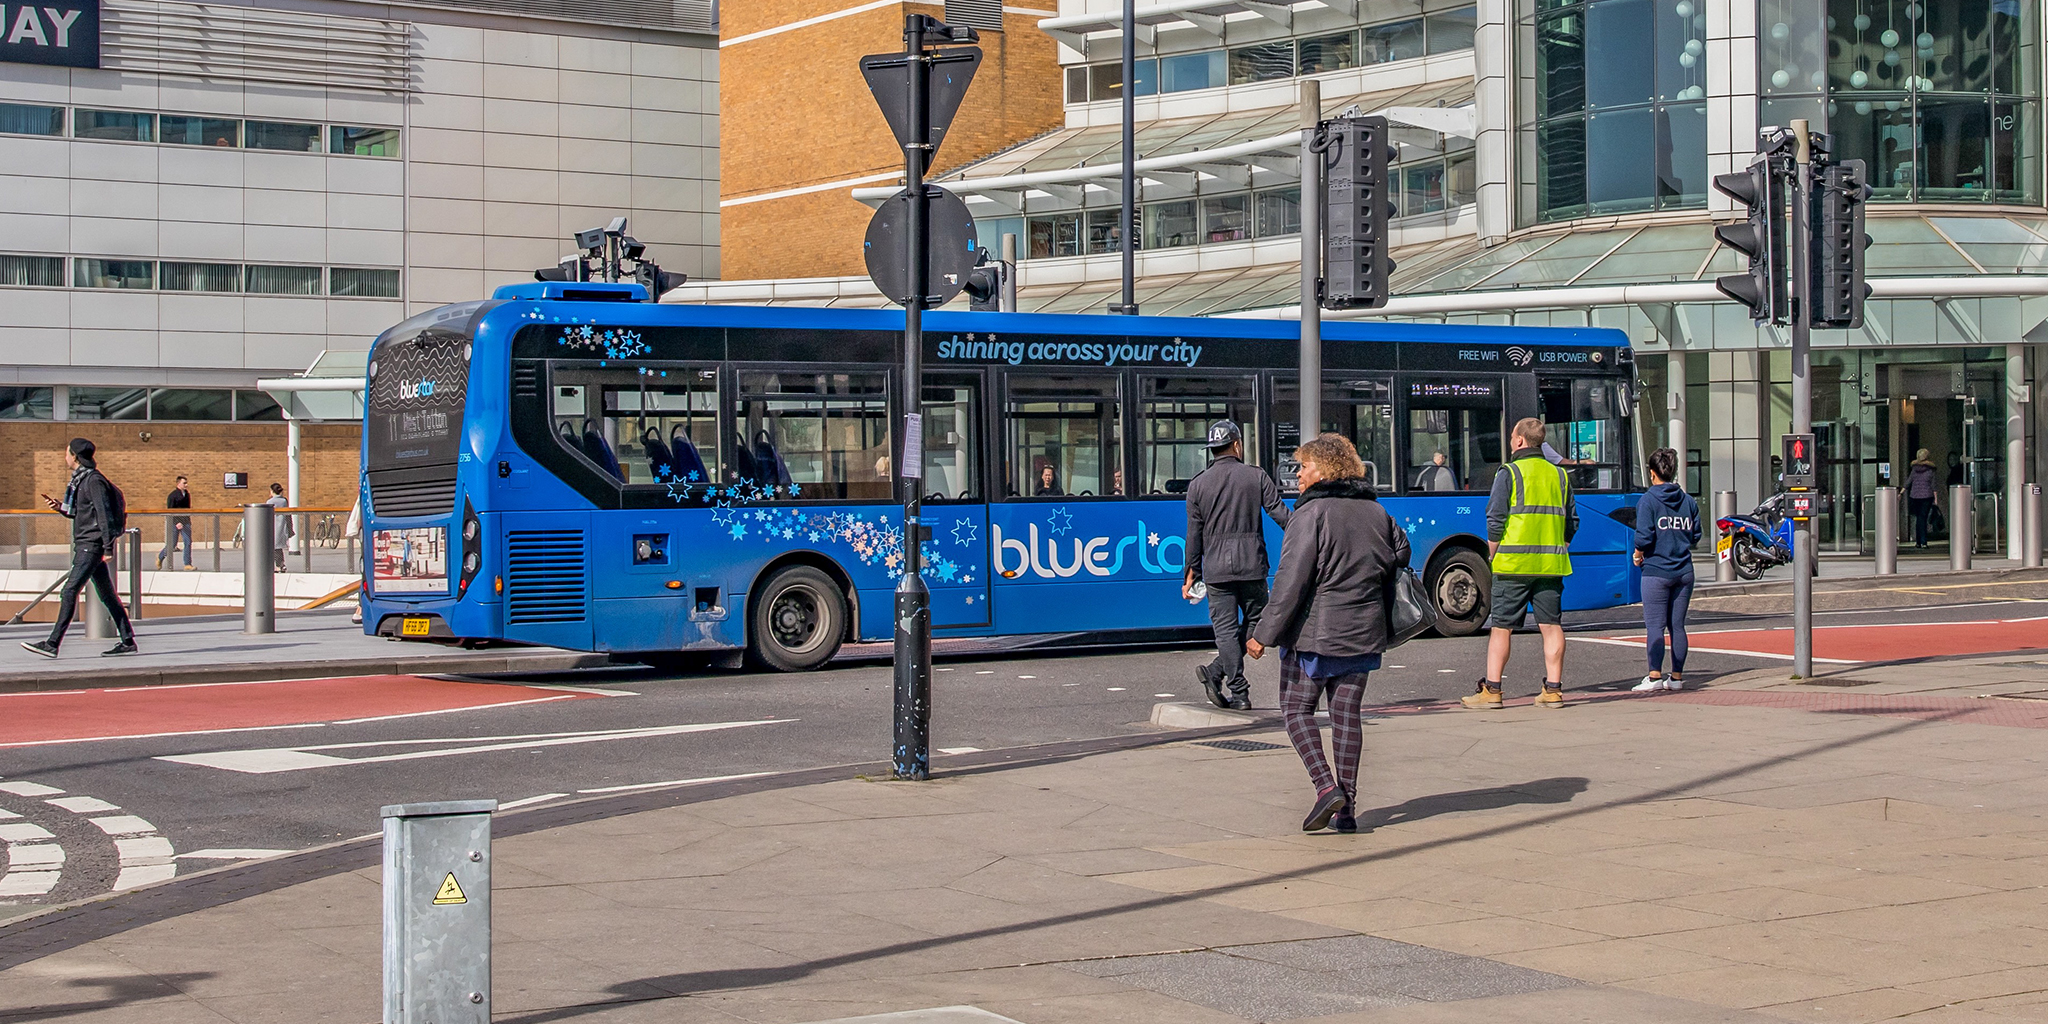 Photo of a Bluestar bus outside Westquay shopping centre